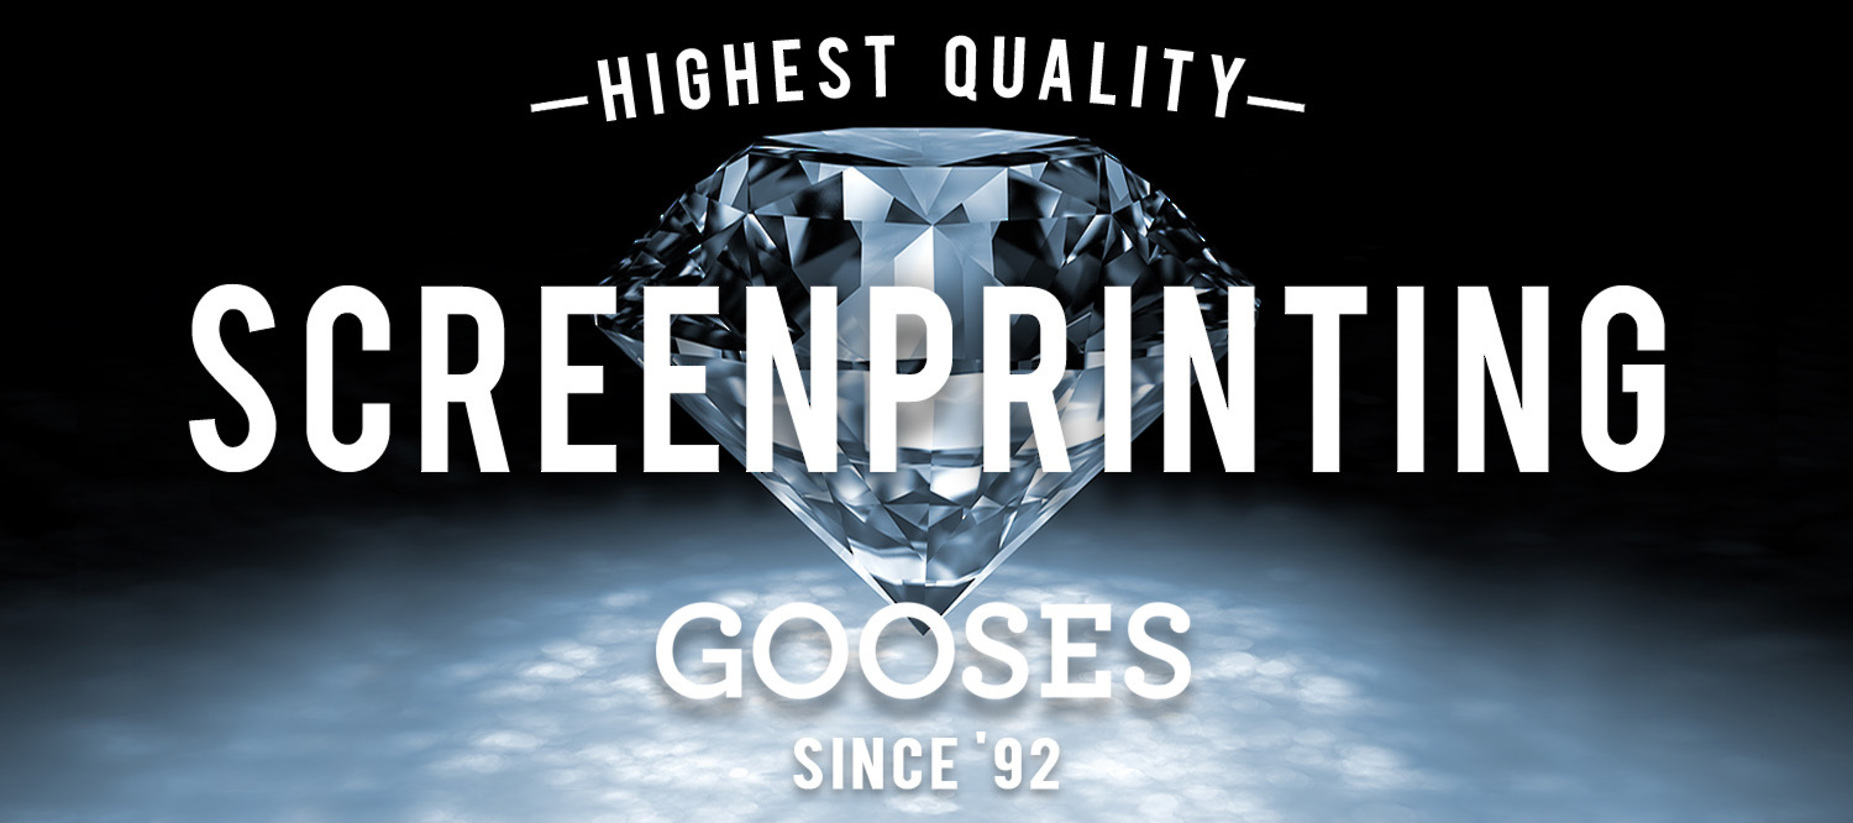 Gooses Screen printing is Highest Quality